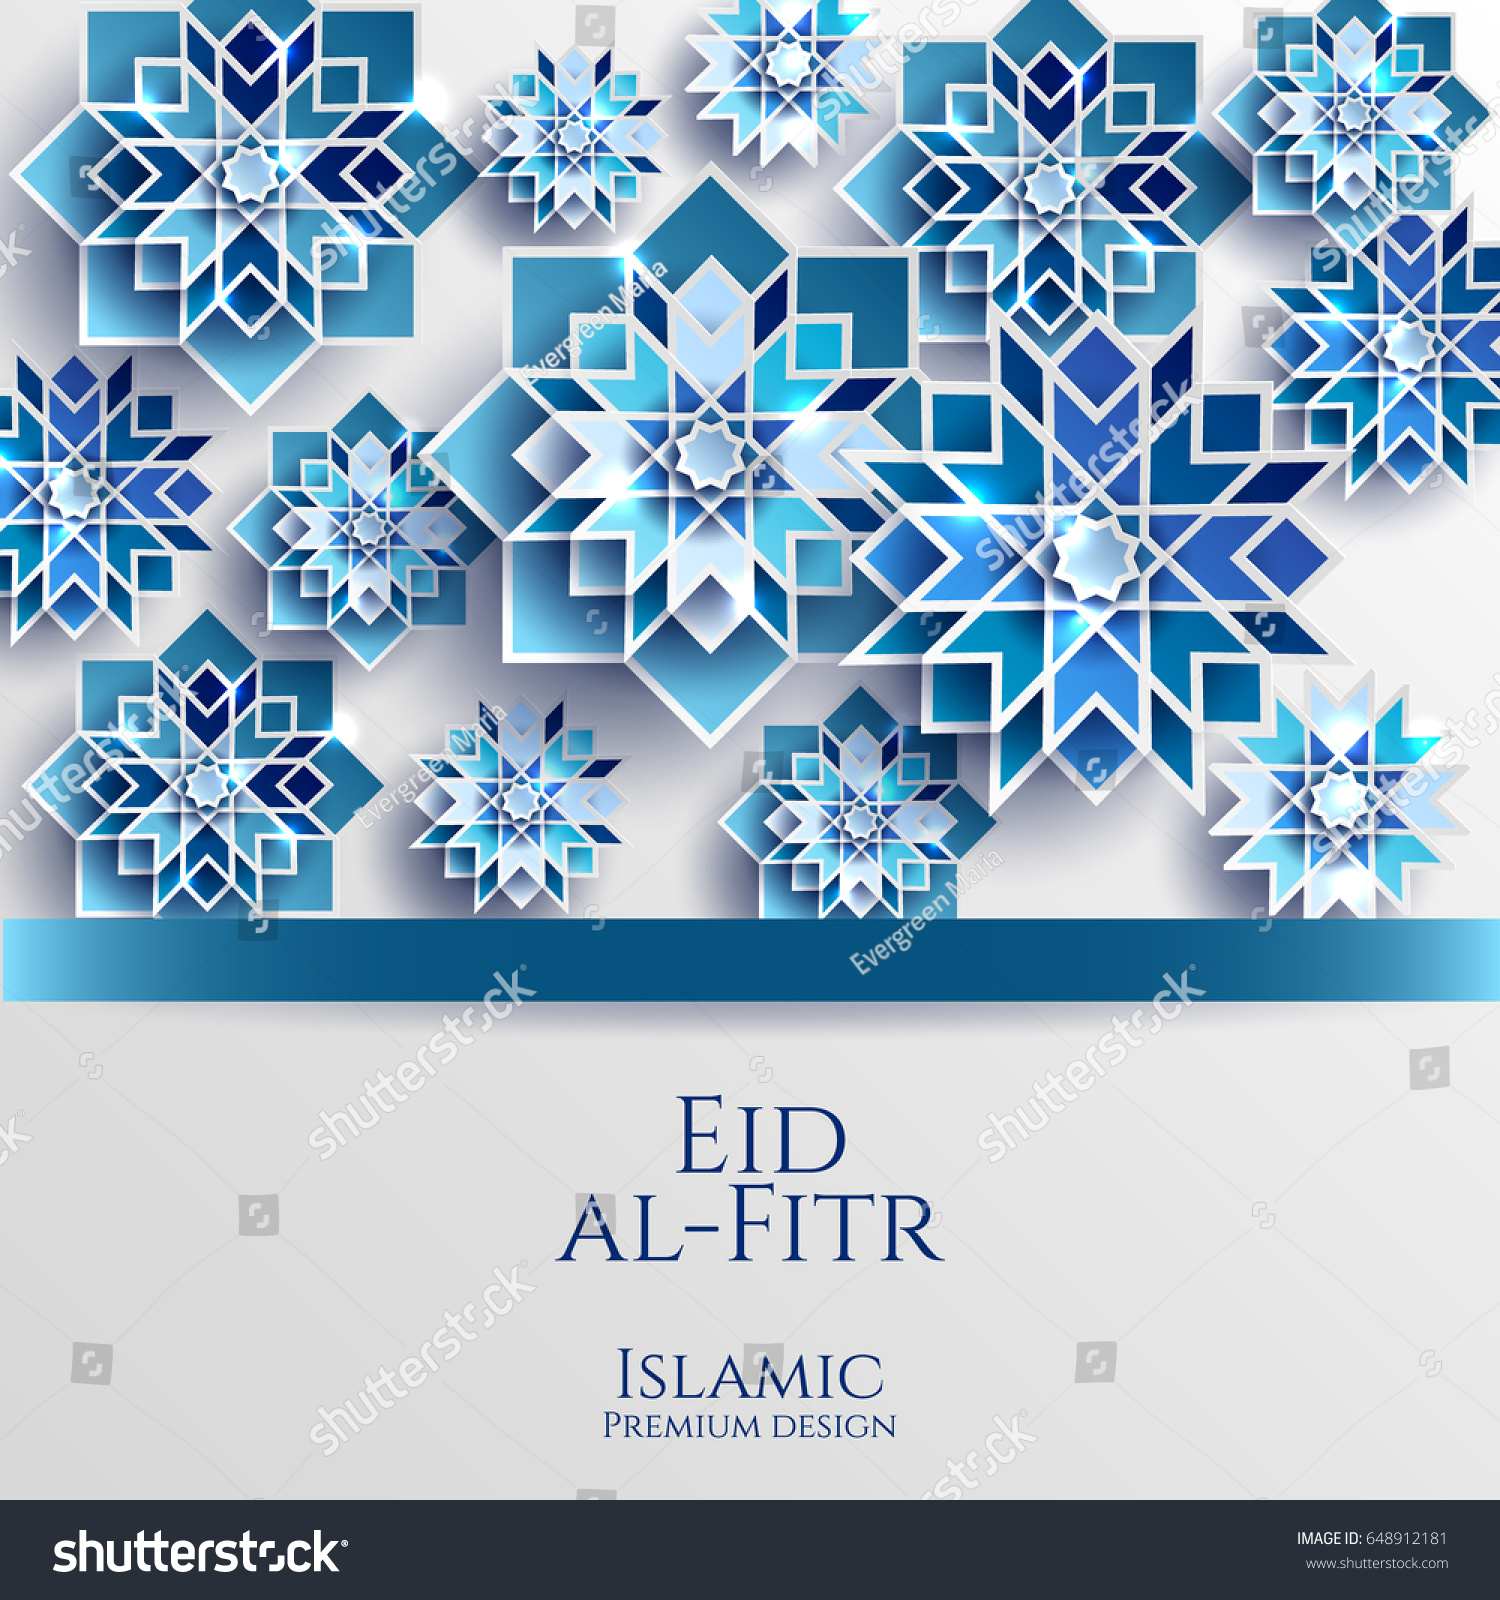 Simple Paper Eid Al-Fitr Decorations - stock-vector-feast-of-breaking-the-fast-celebrate-greeting-card-with-paper-cutting-style-with-bright-colored-648912181  Collection_124128 .jpg